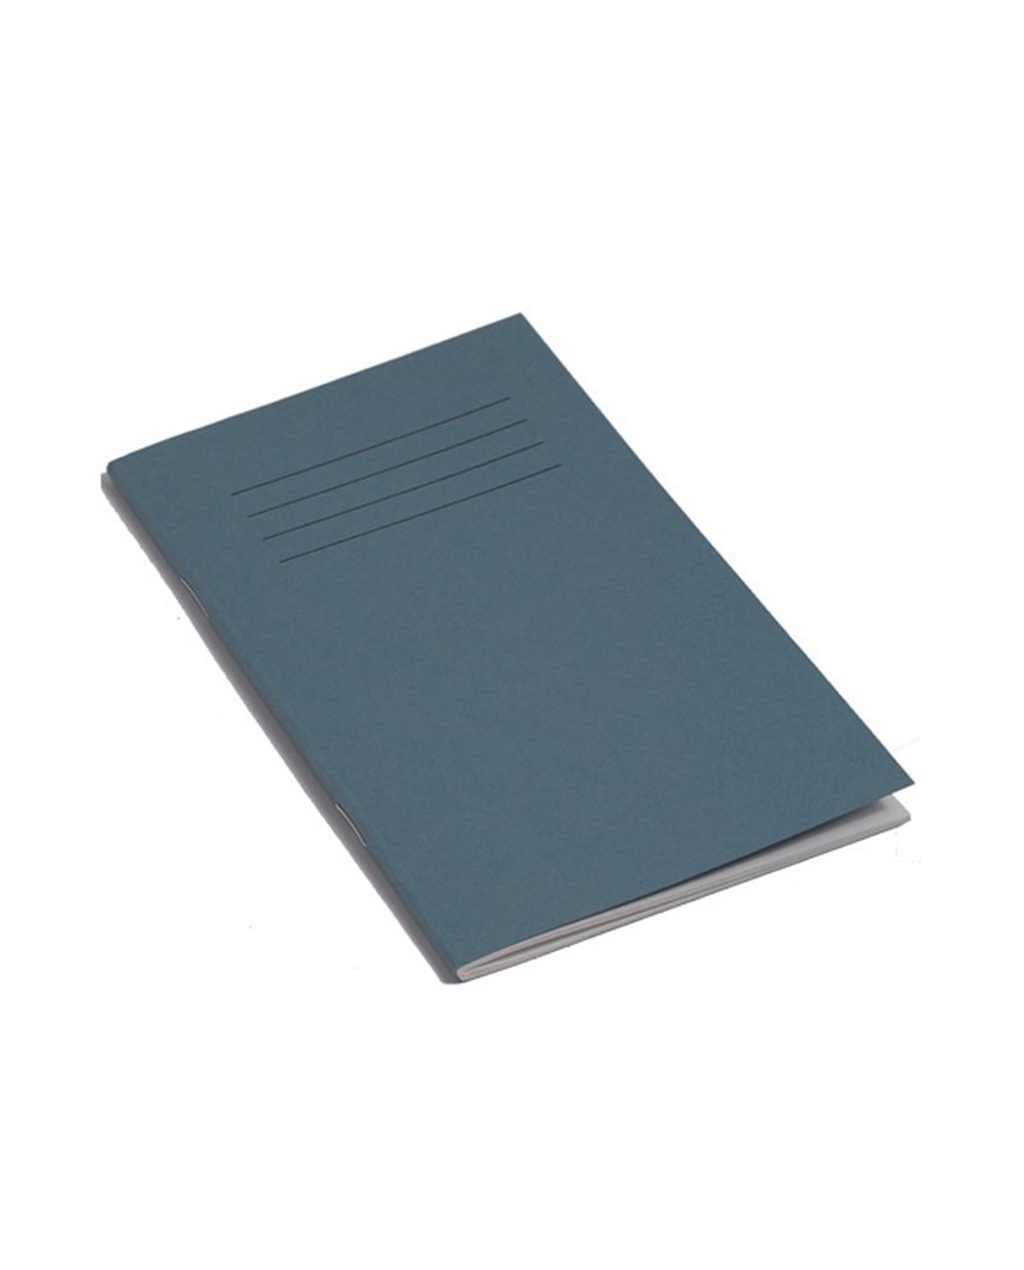 Exercise Book 6.5 x 4 (165 x 102mm) Light Blue Cover 7mm Ruled & Centre Margin 48 Pages